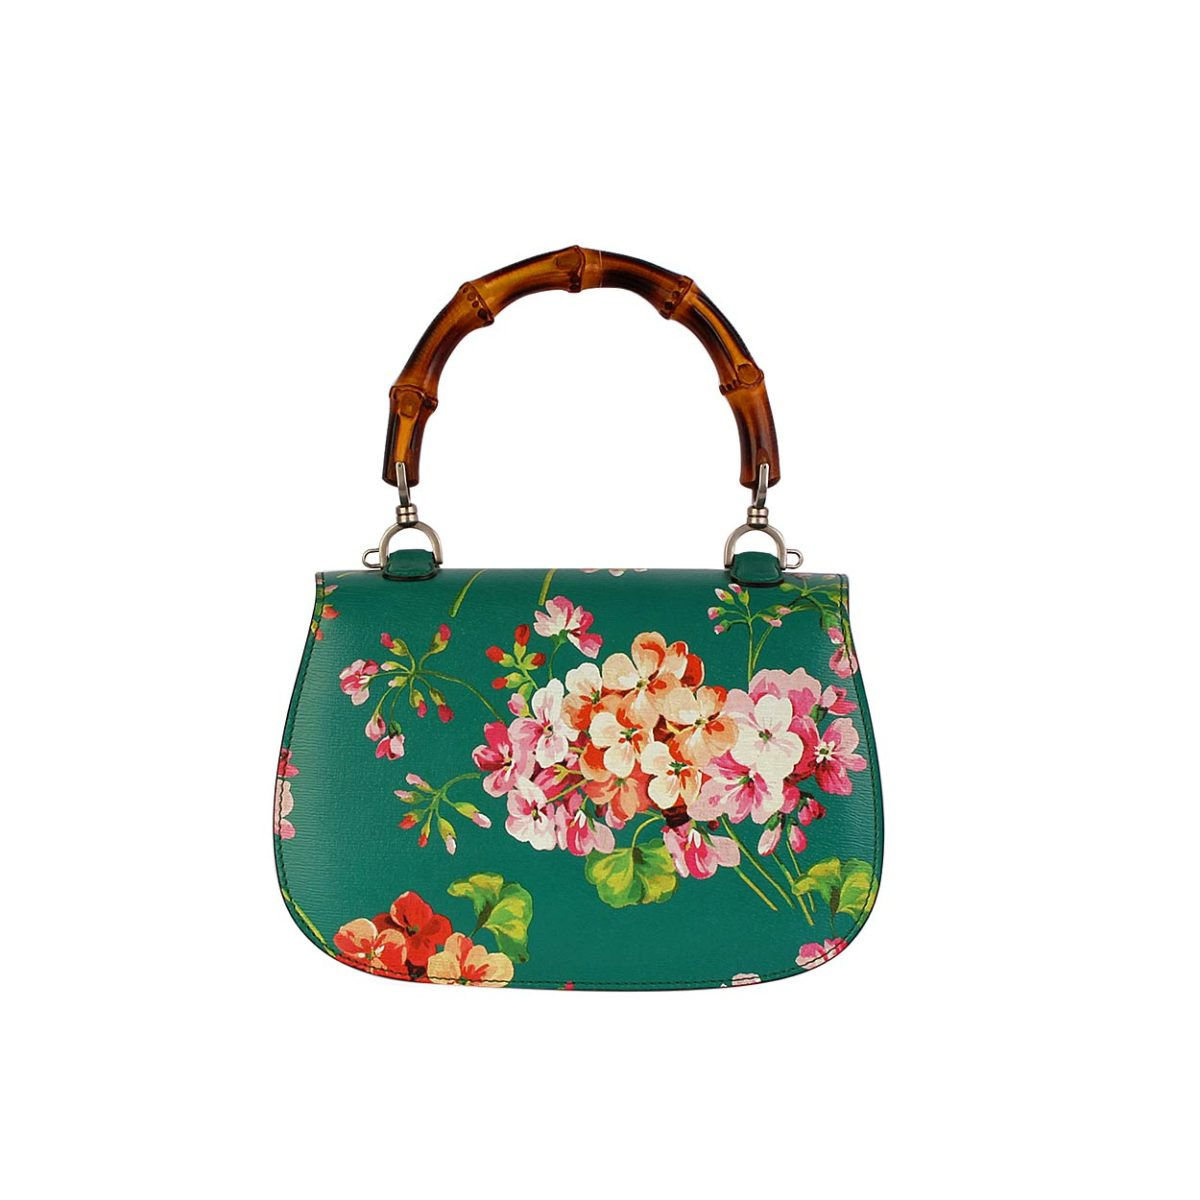 Fashion week Bamboo gucci classic blooms top handle bag for lady